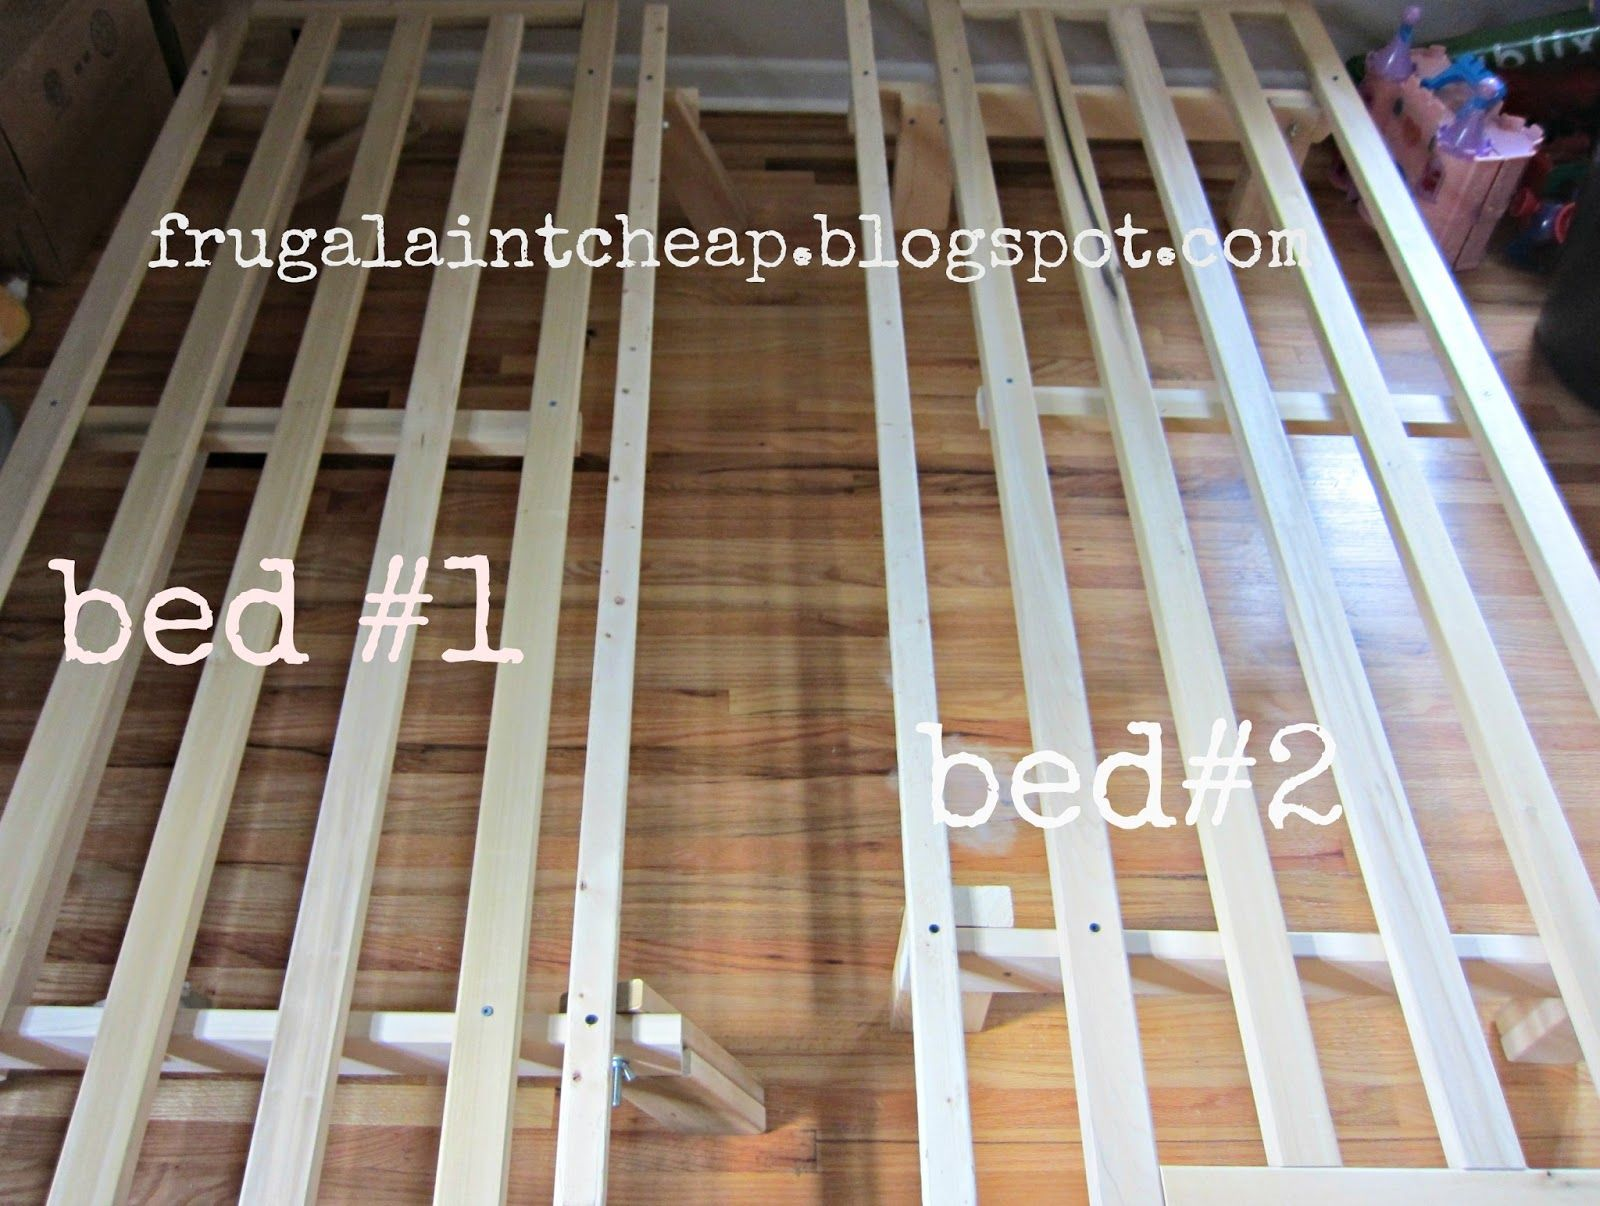 Frugal Aint Cheap: Futon to twin size beds | low cost projects ...